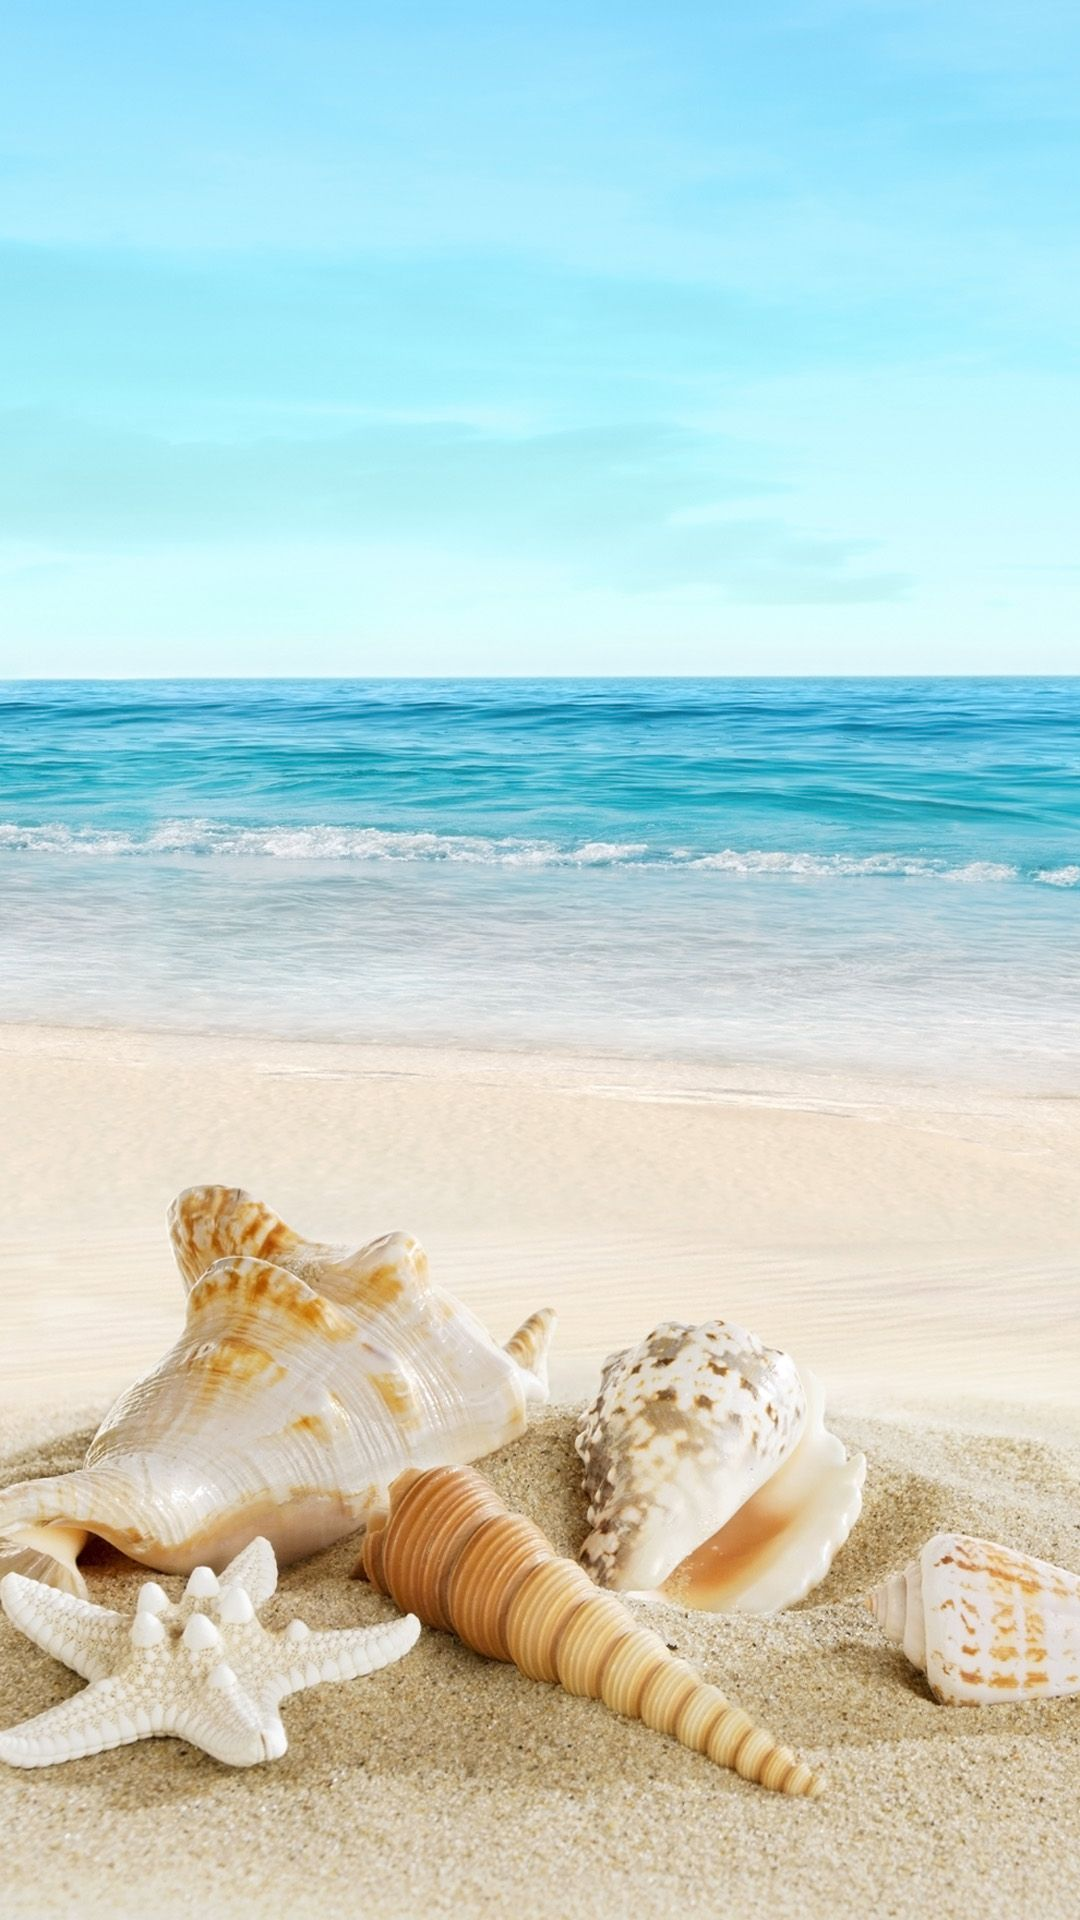 nature sunny sea shell beach iphone 6 wallpaper | ♡ wallpapers i